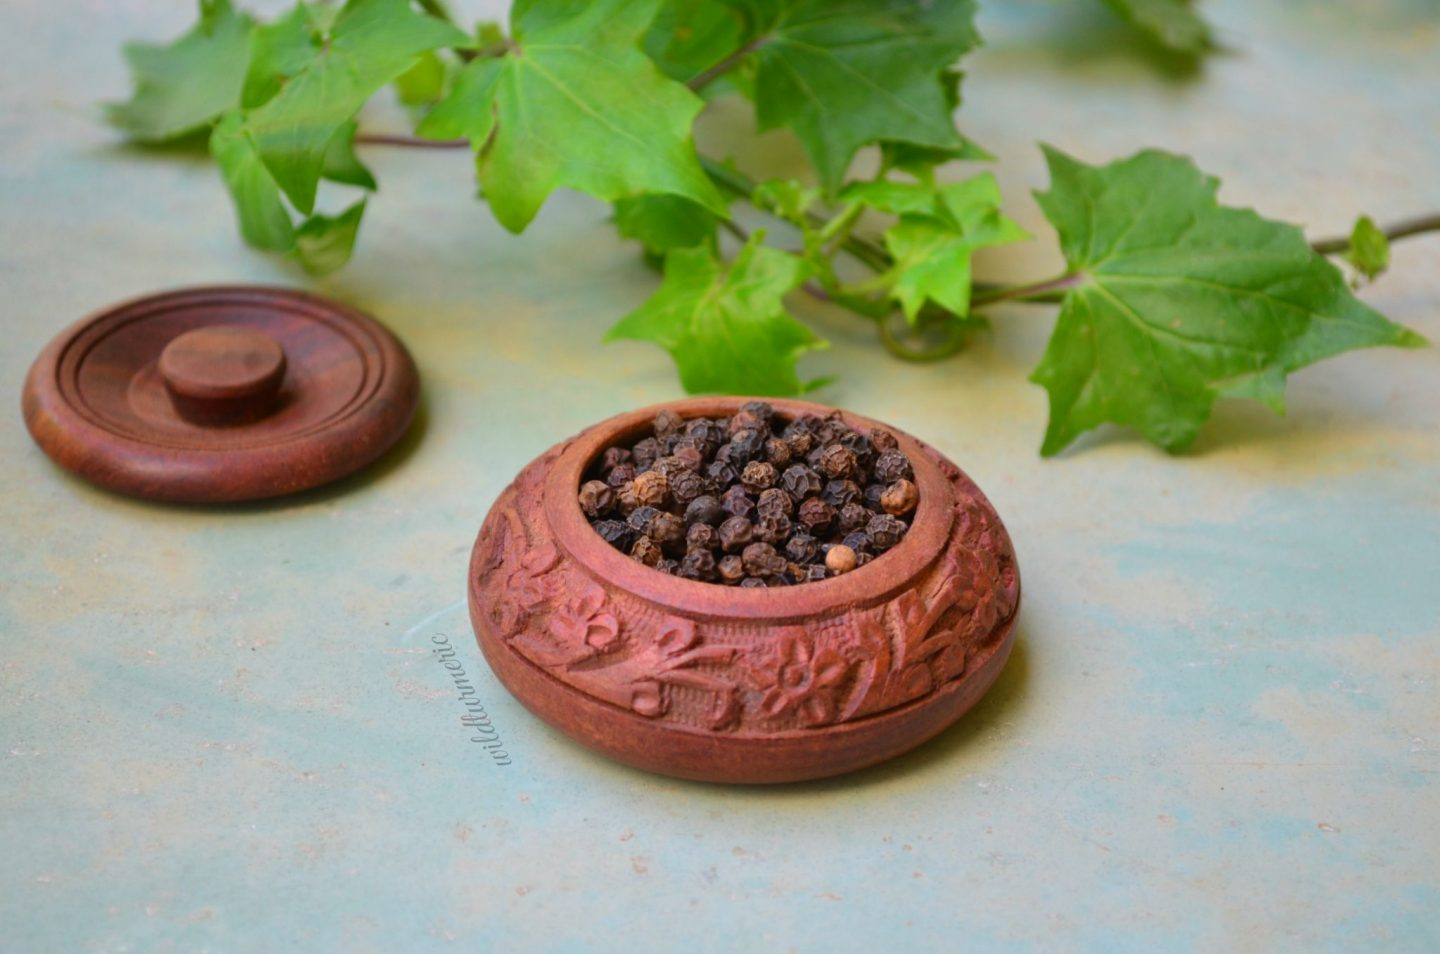 15 Top Benefits Of Black Pepper (Kali Mirch) For Hair, Skin & Health